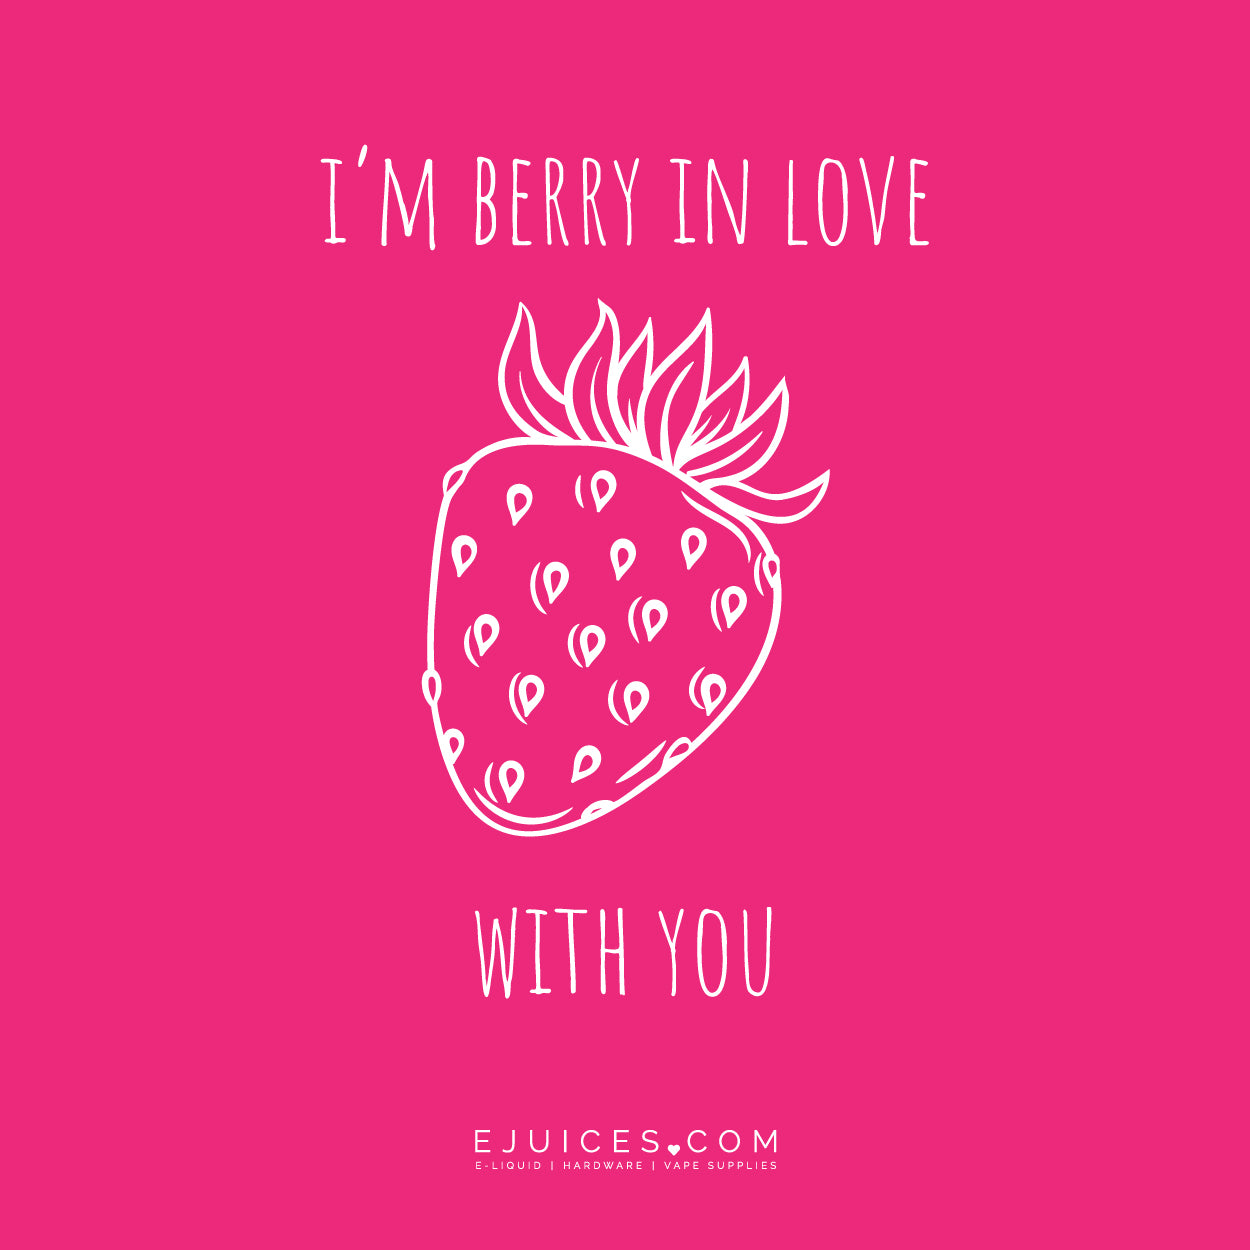 I'm berry in love with you